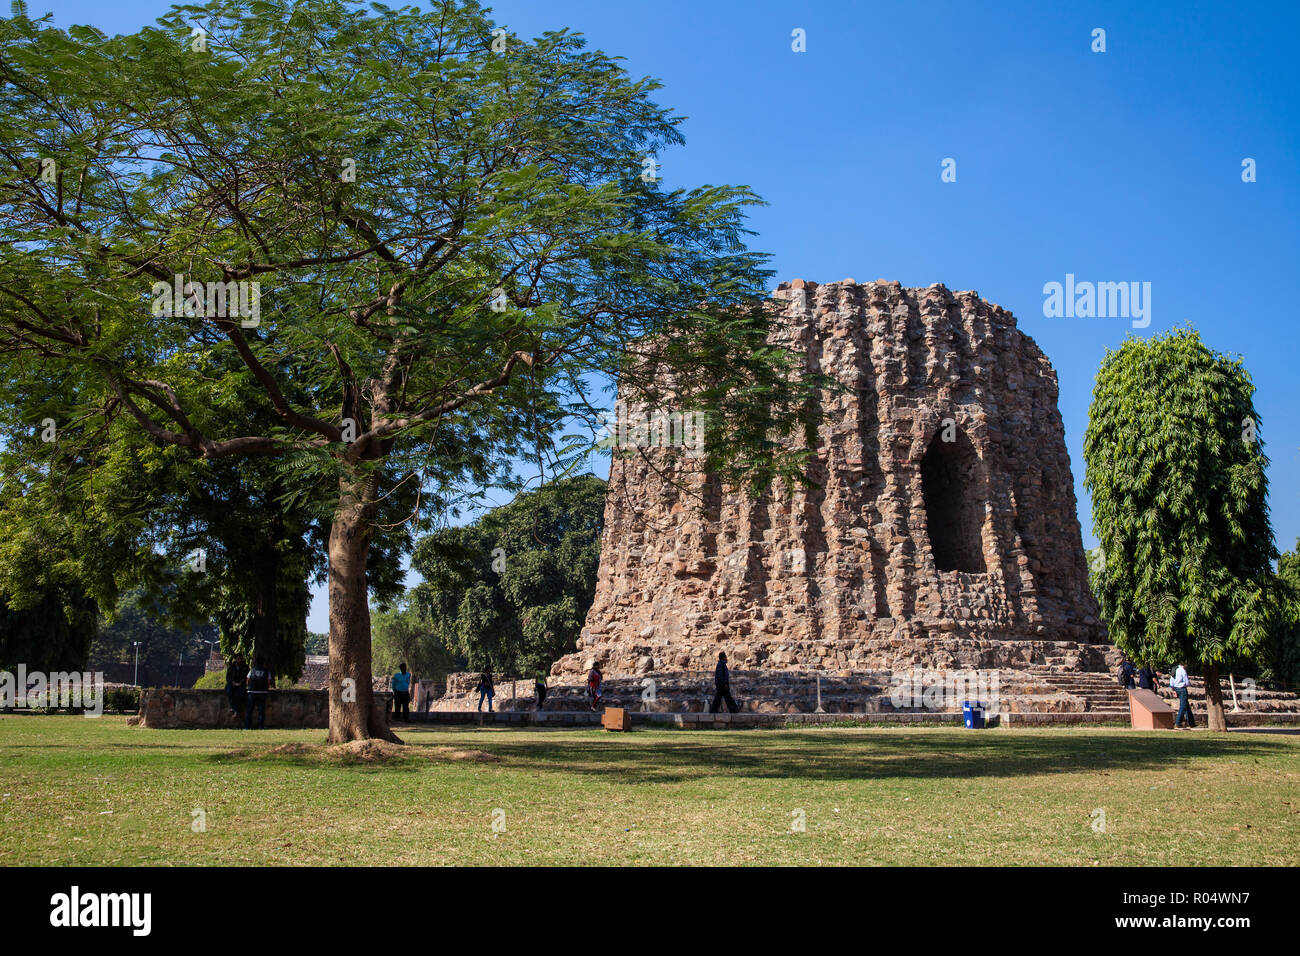 Qutub Minar, Atai Minor, an incomplete tower originally intended to be twice as high as Qutub Minar, UNESCO World Heritage Site, Delhi, India, Asia - Stock Image